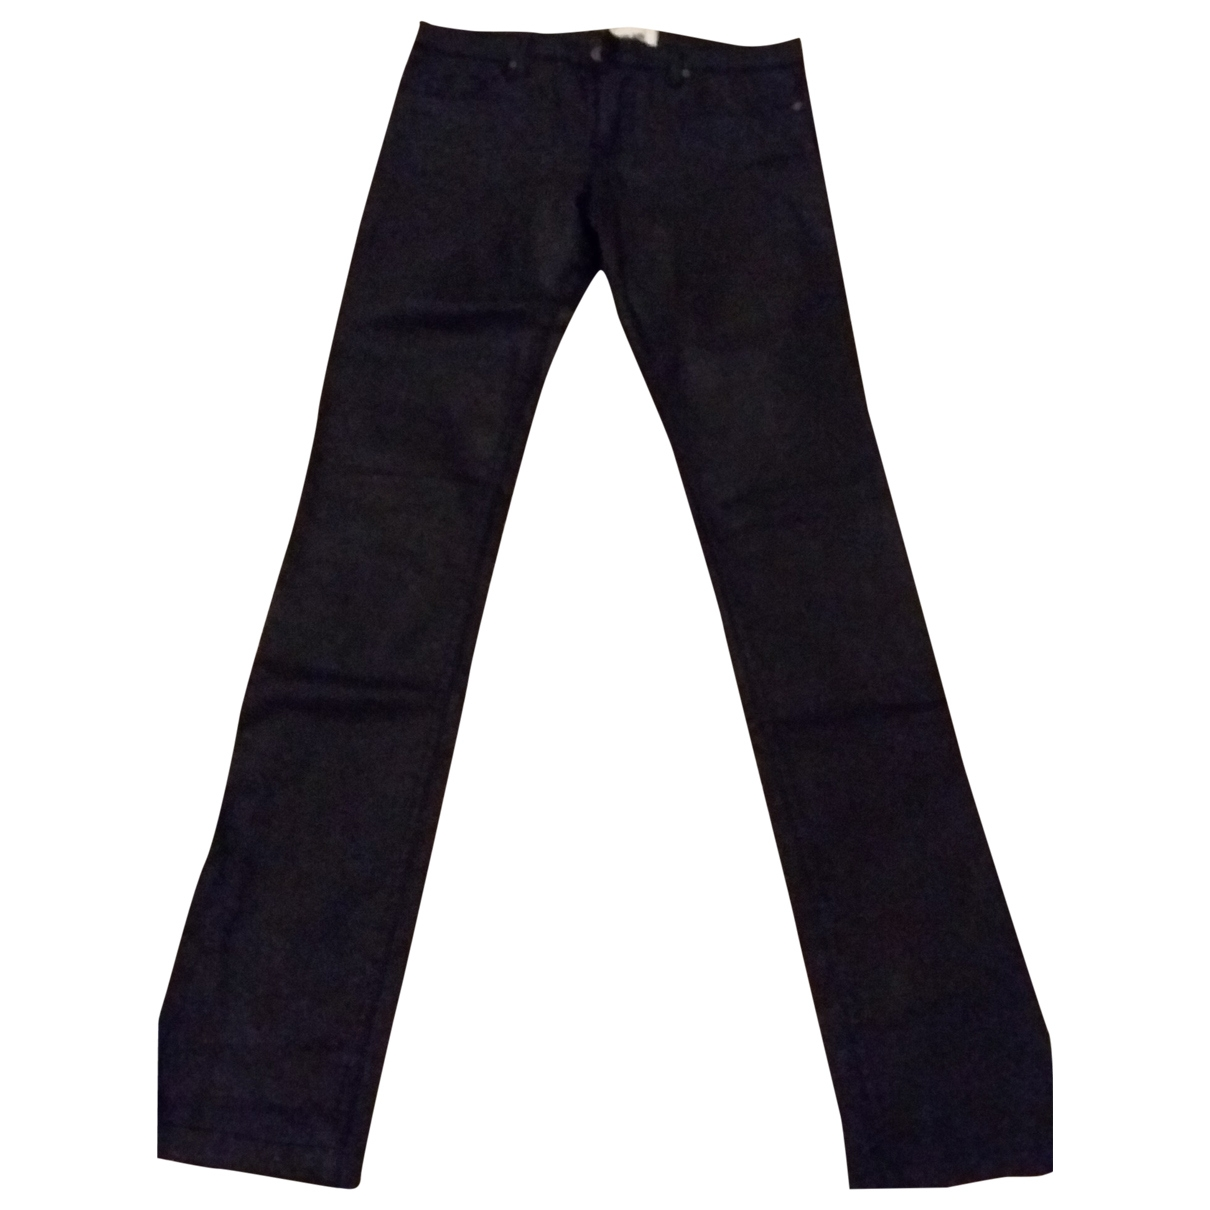 Bel Air \N Black Cotton Trousers for Women 36 FR